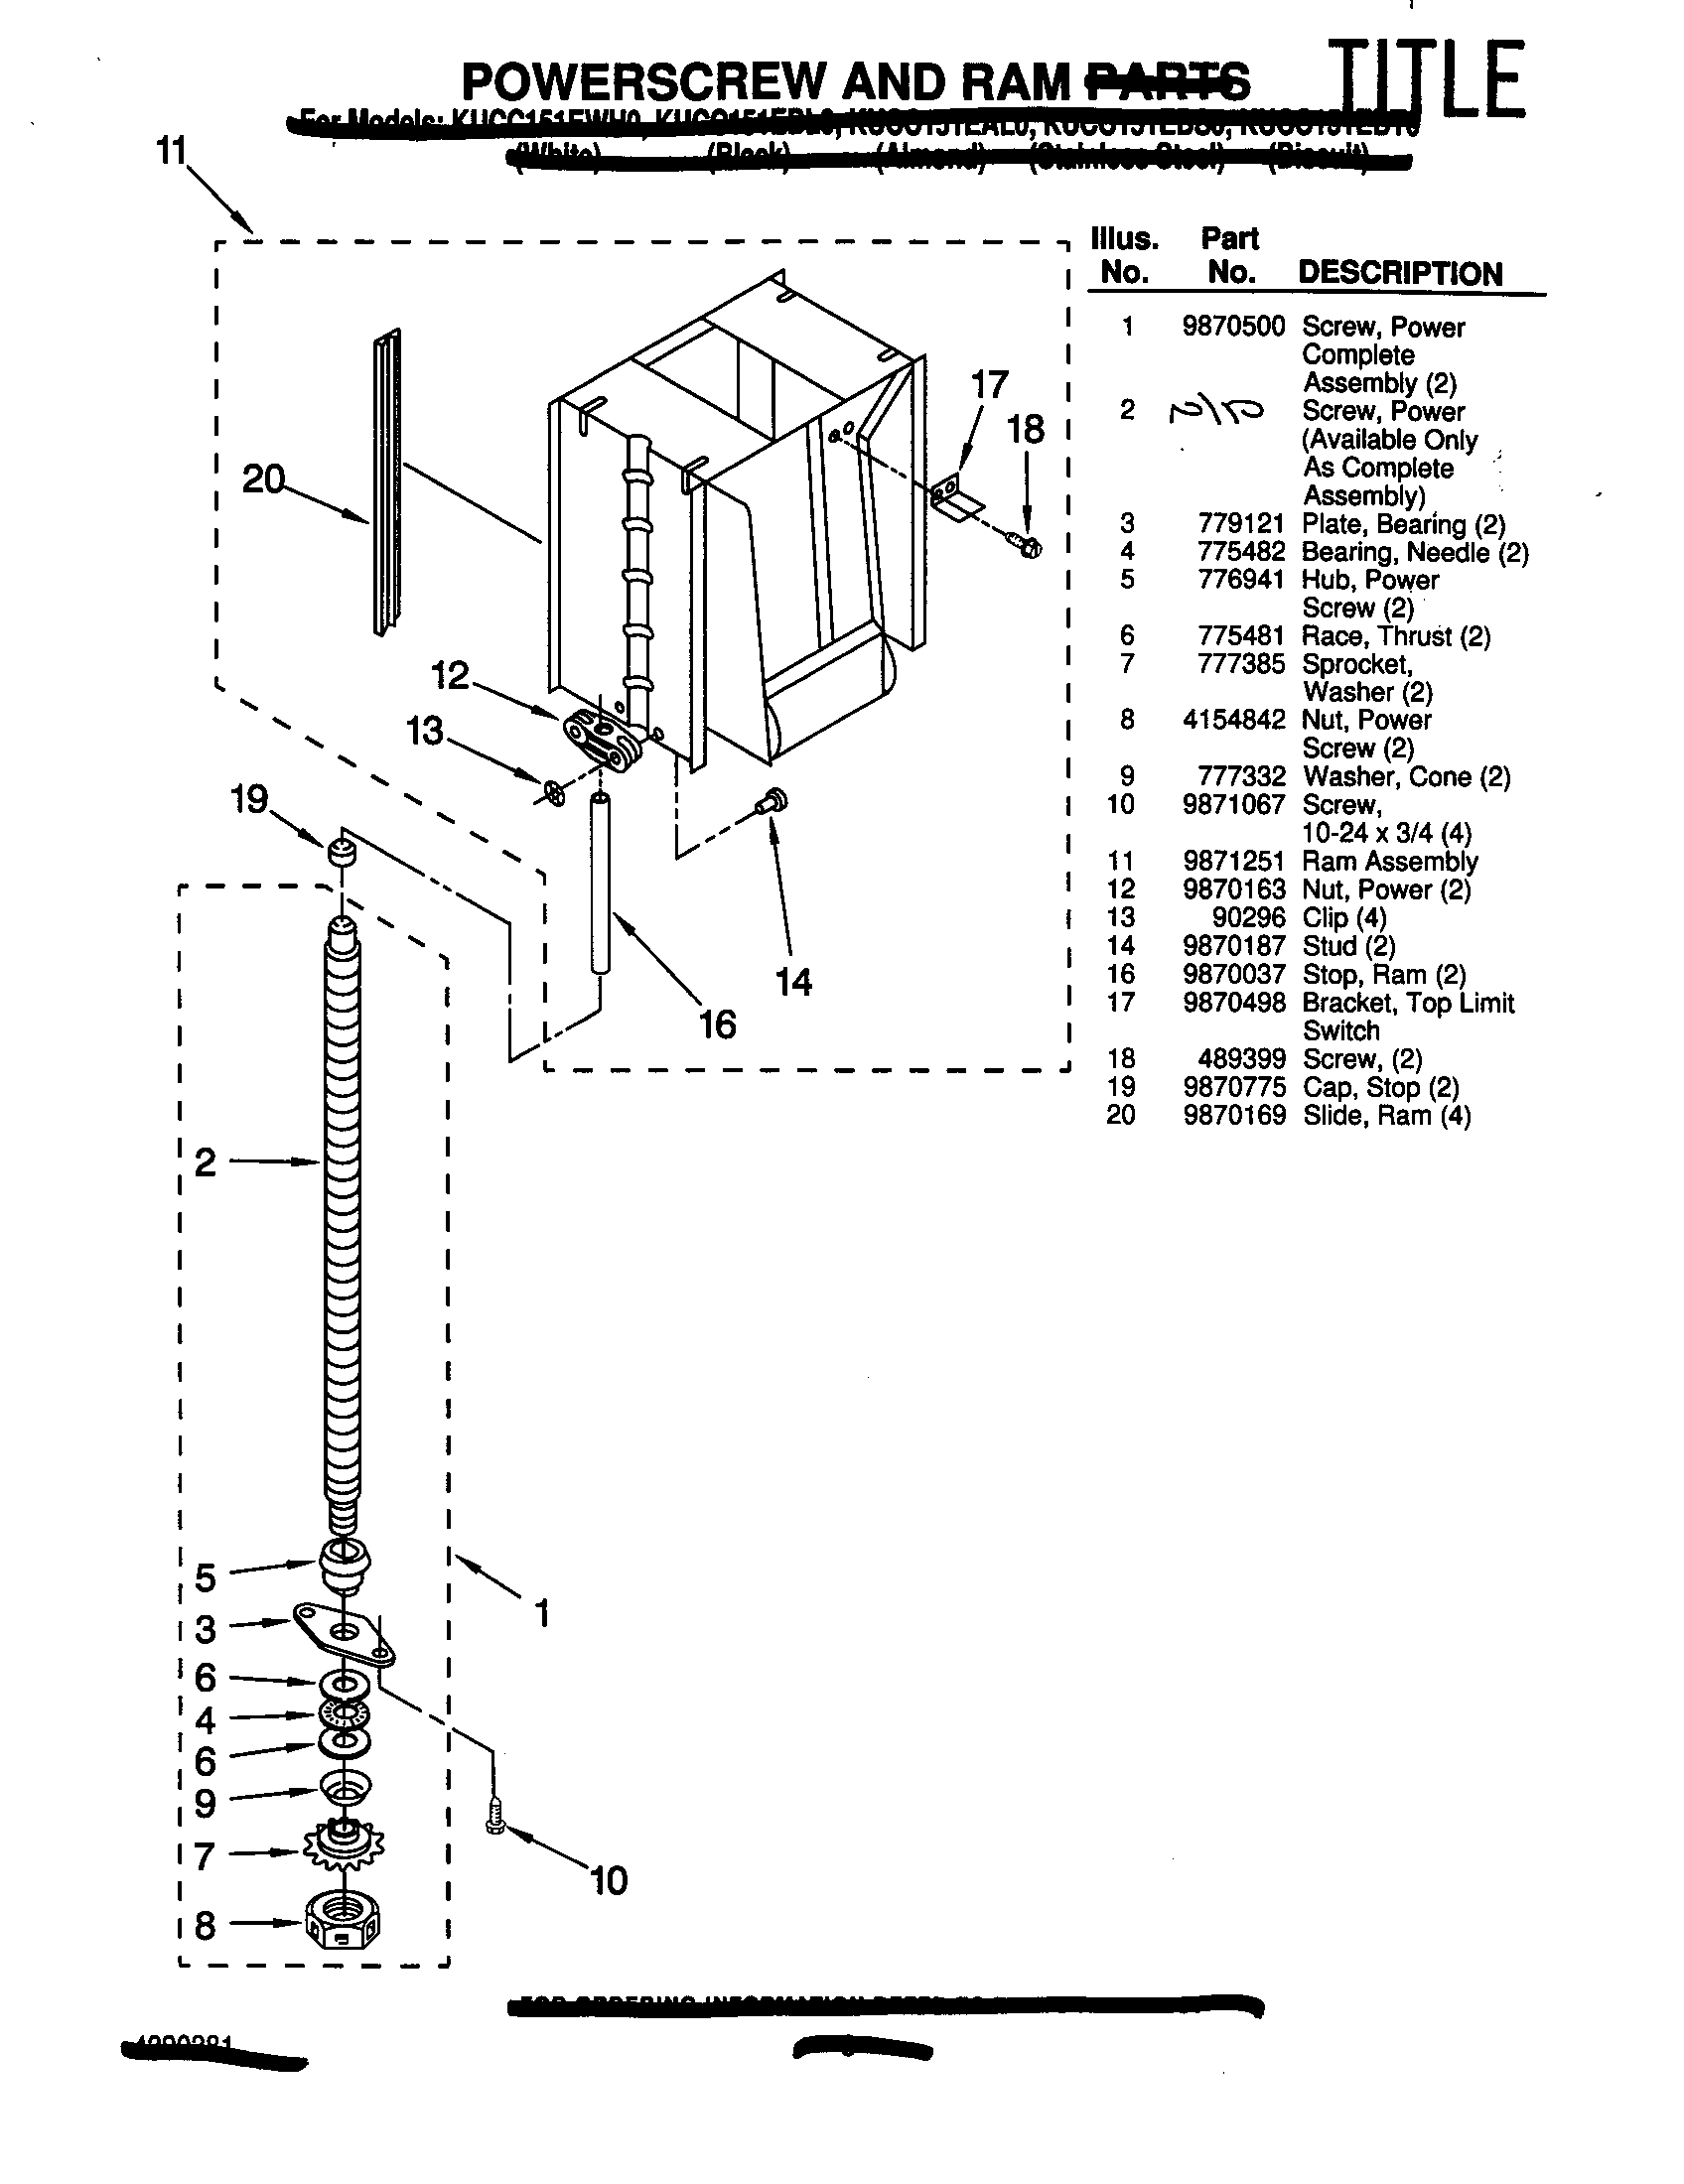 Wiring Diagram For Industrial Trash Compactor Trash